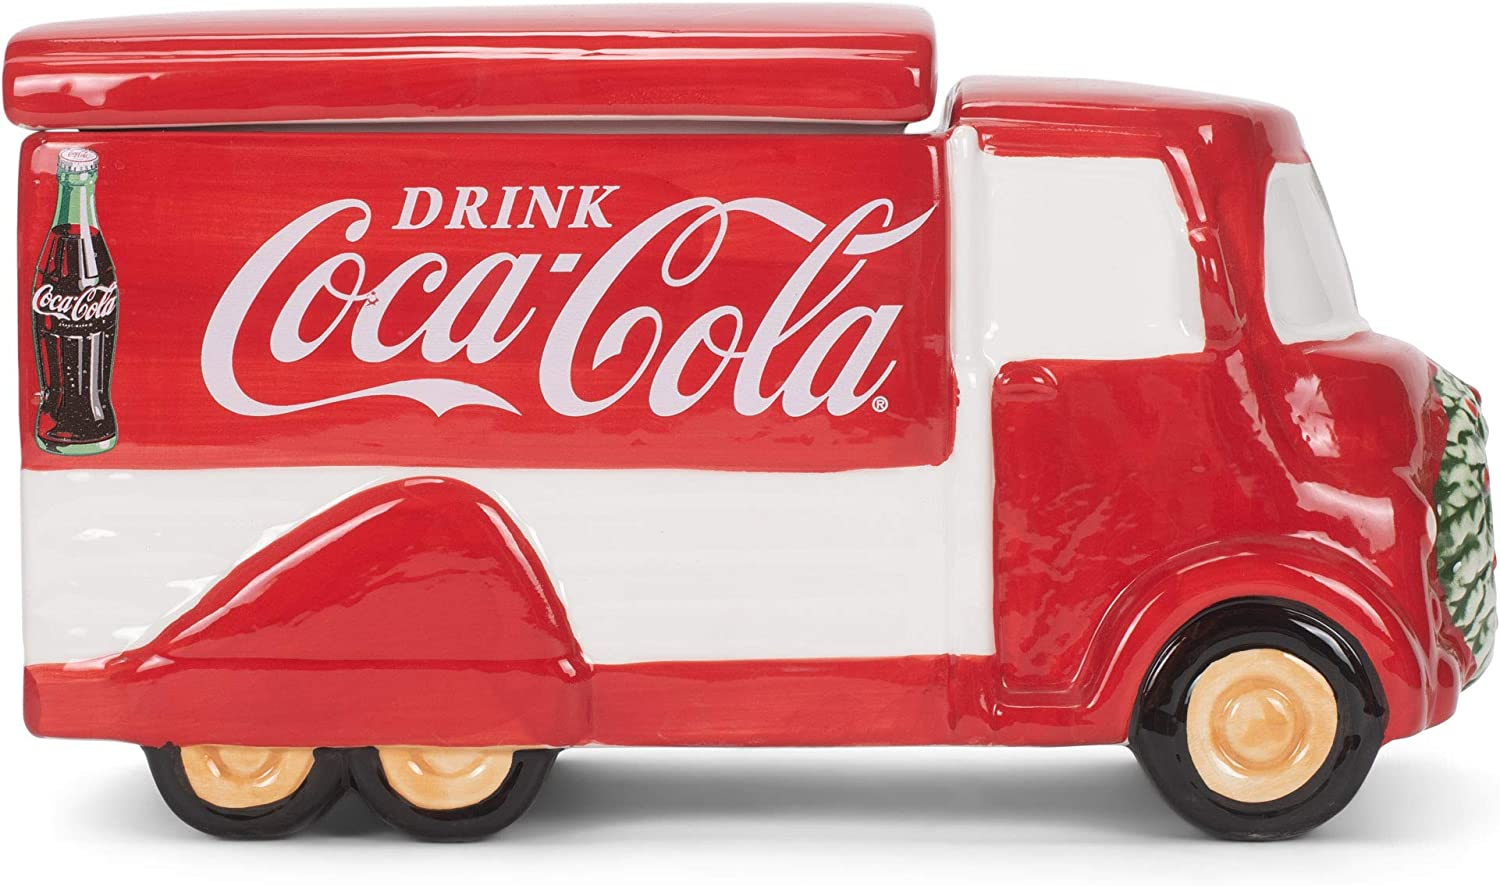 Coca Cola Vintage Delivery Truck Shaped 10.75 x 6 Dolomite Ceramic Holiday Snack and Cookie Jar with Lid